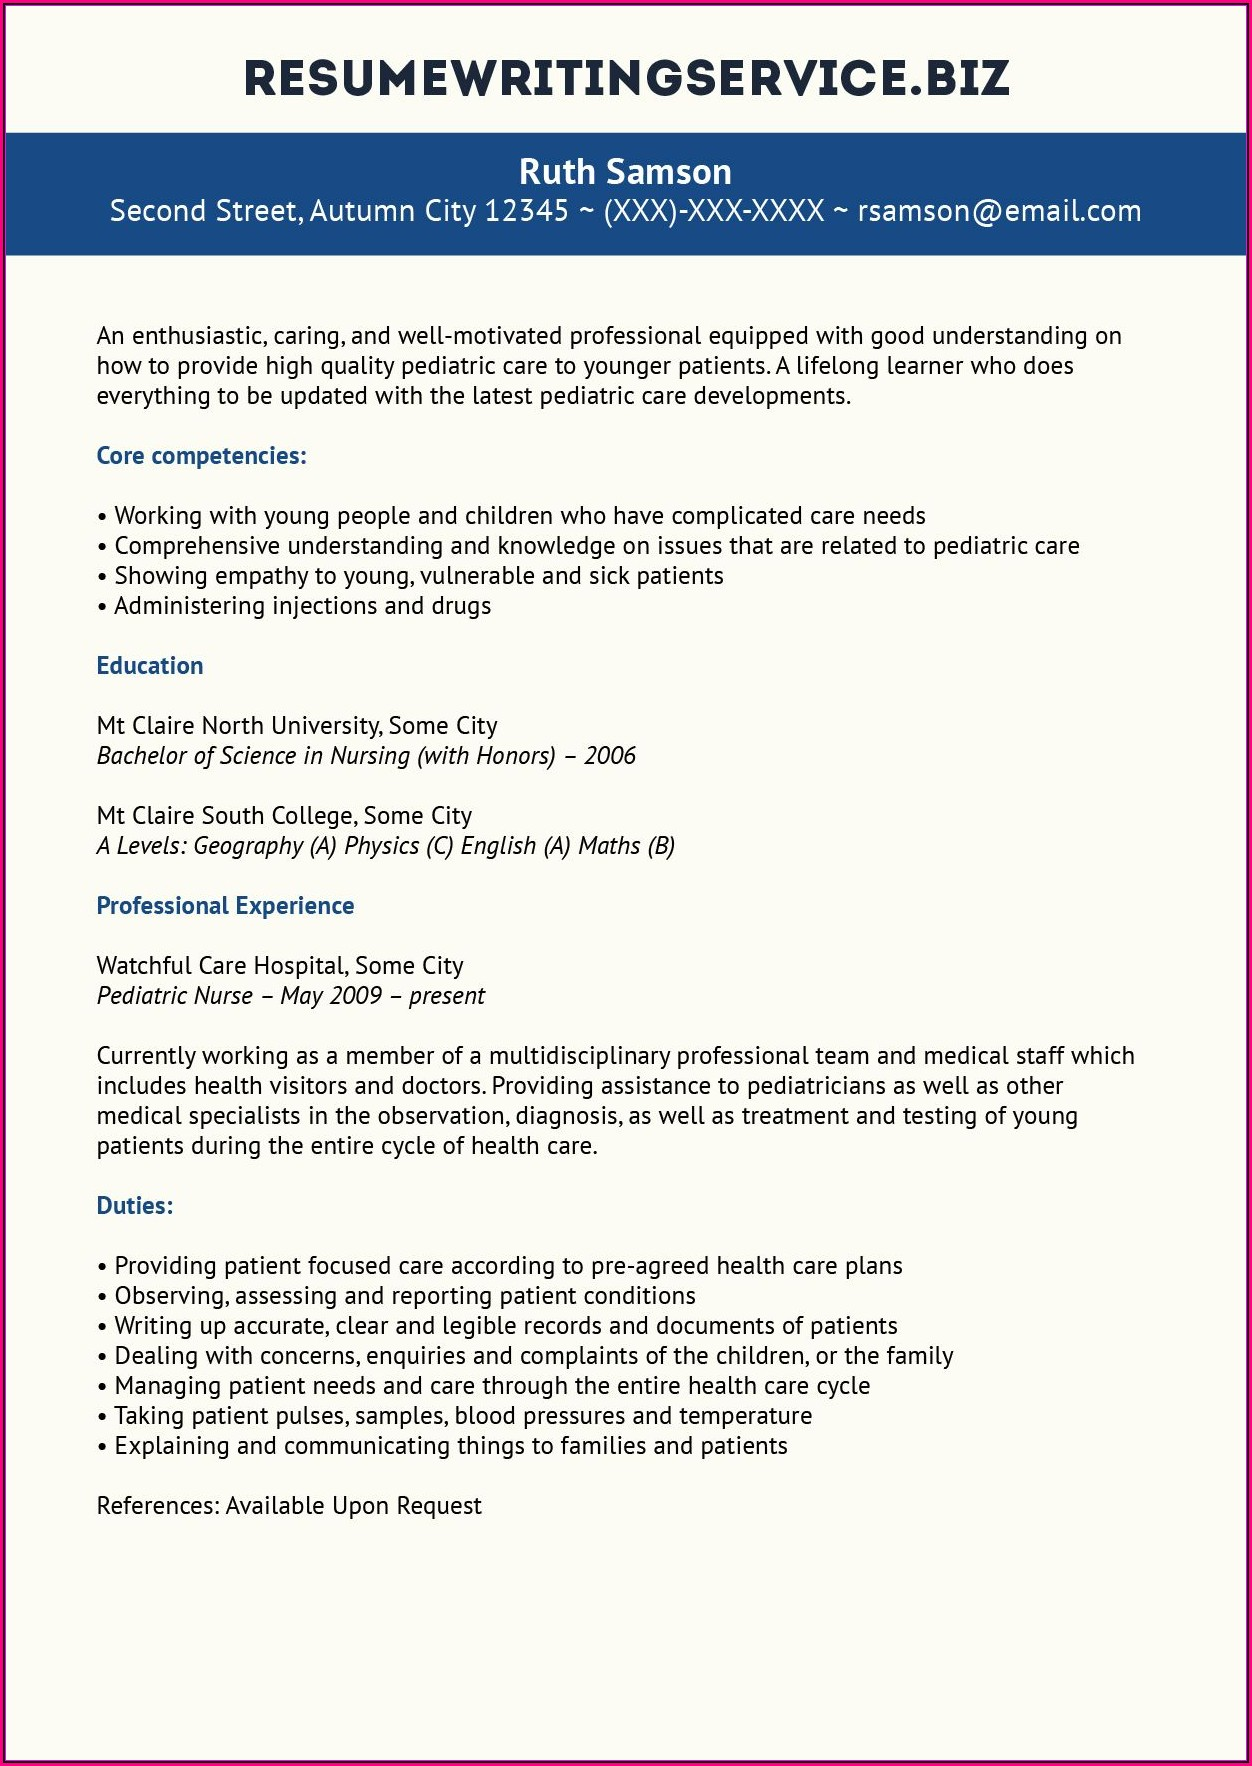 Nursing Resume Services